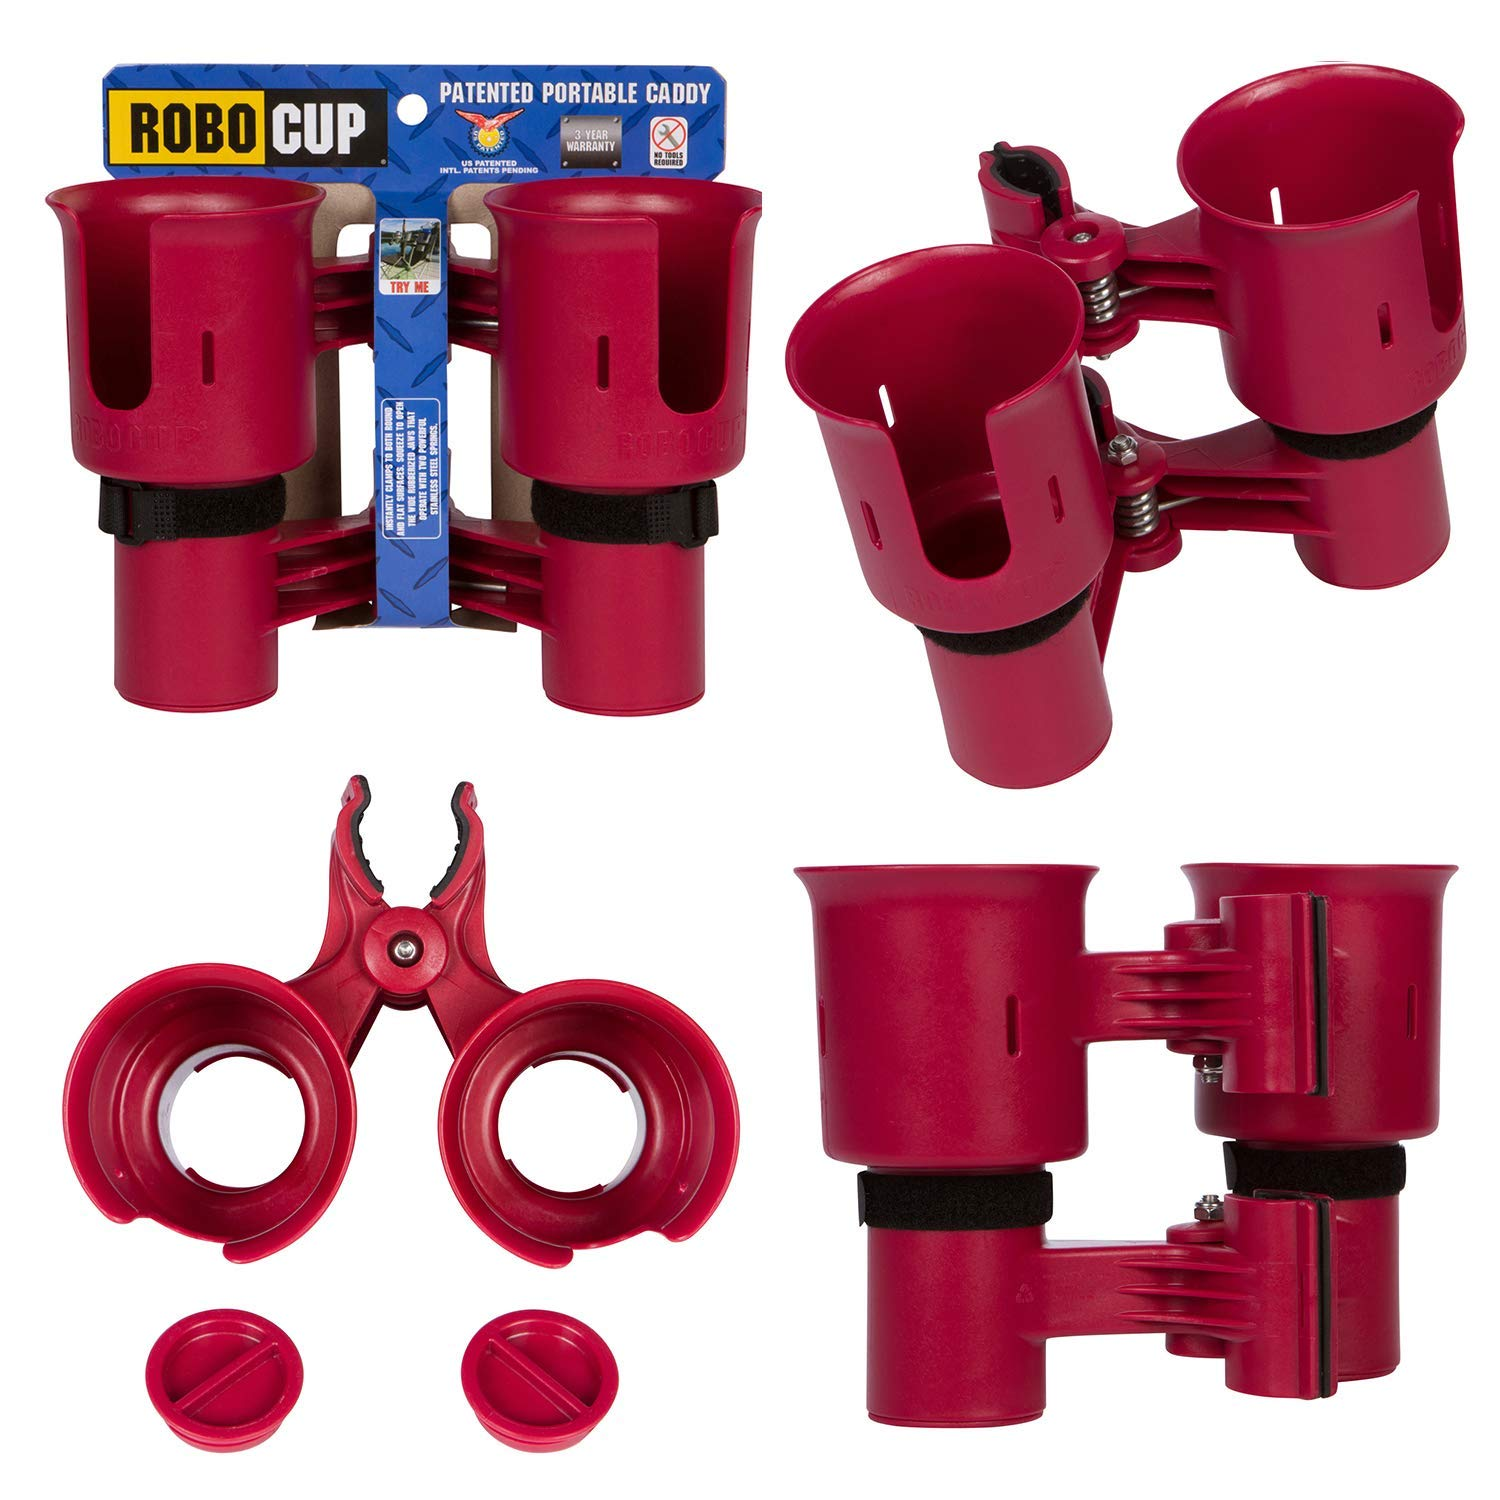 ROBOCUP, RED, Updated Version,Best Cup Holder for Drinks, Fishing Rod/Pole, Boat, Beach Chair/Golf Cart/Wheelchair/Walker/Drum Sticks/Microphone Stand by ROBOCUP